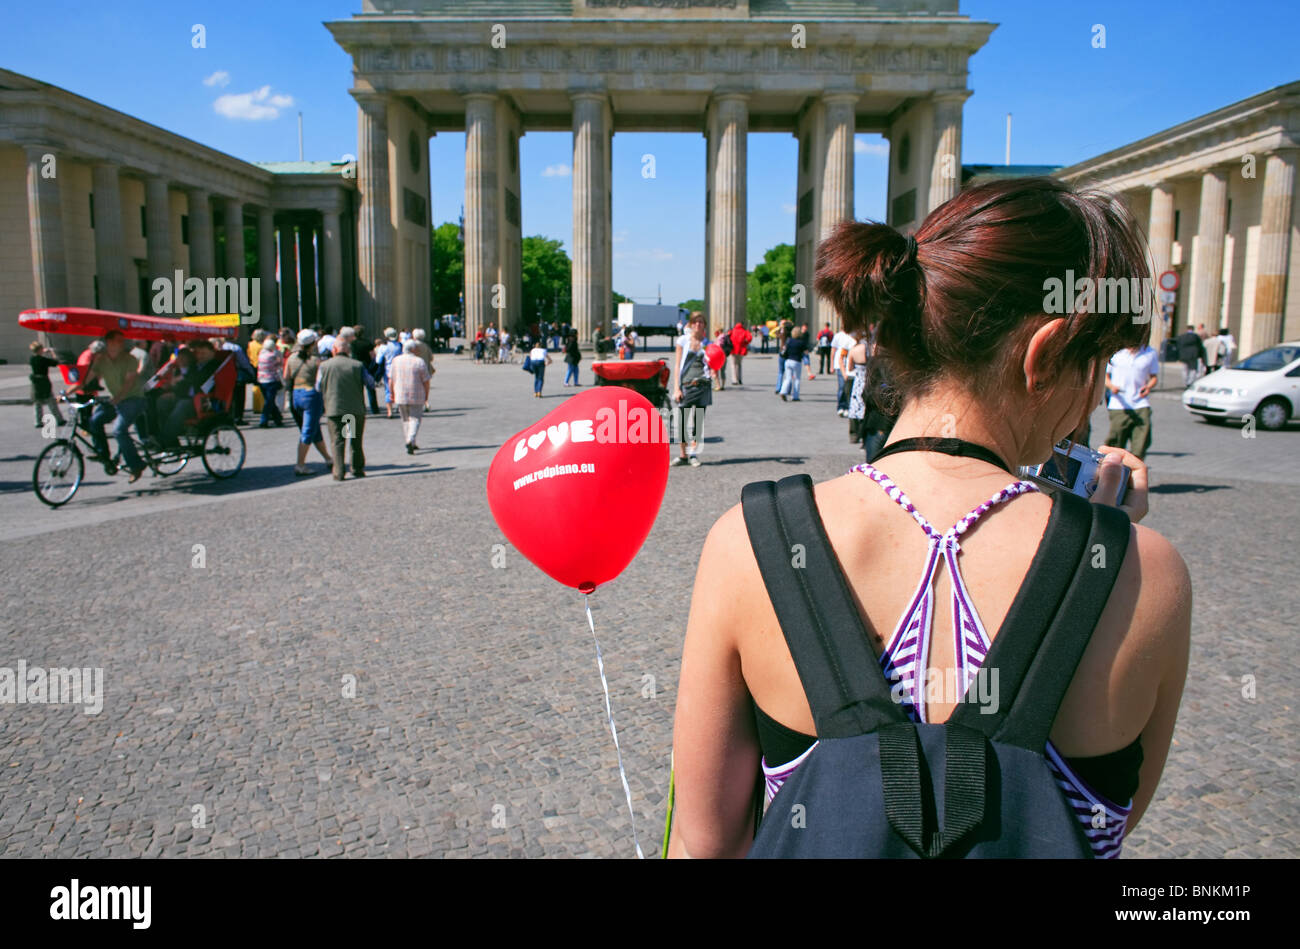 A woman with a red baloon in front of the Brandenburg Gate, Berlin, Germany - Stock Image